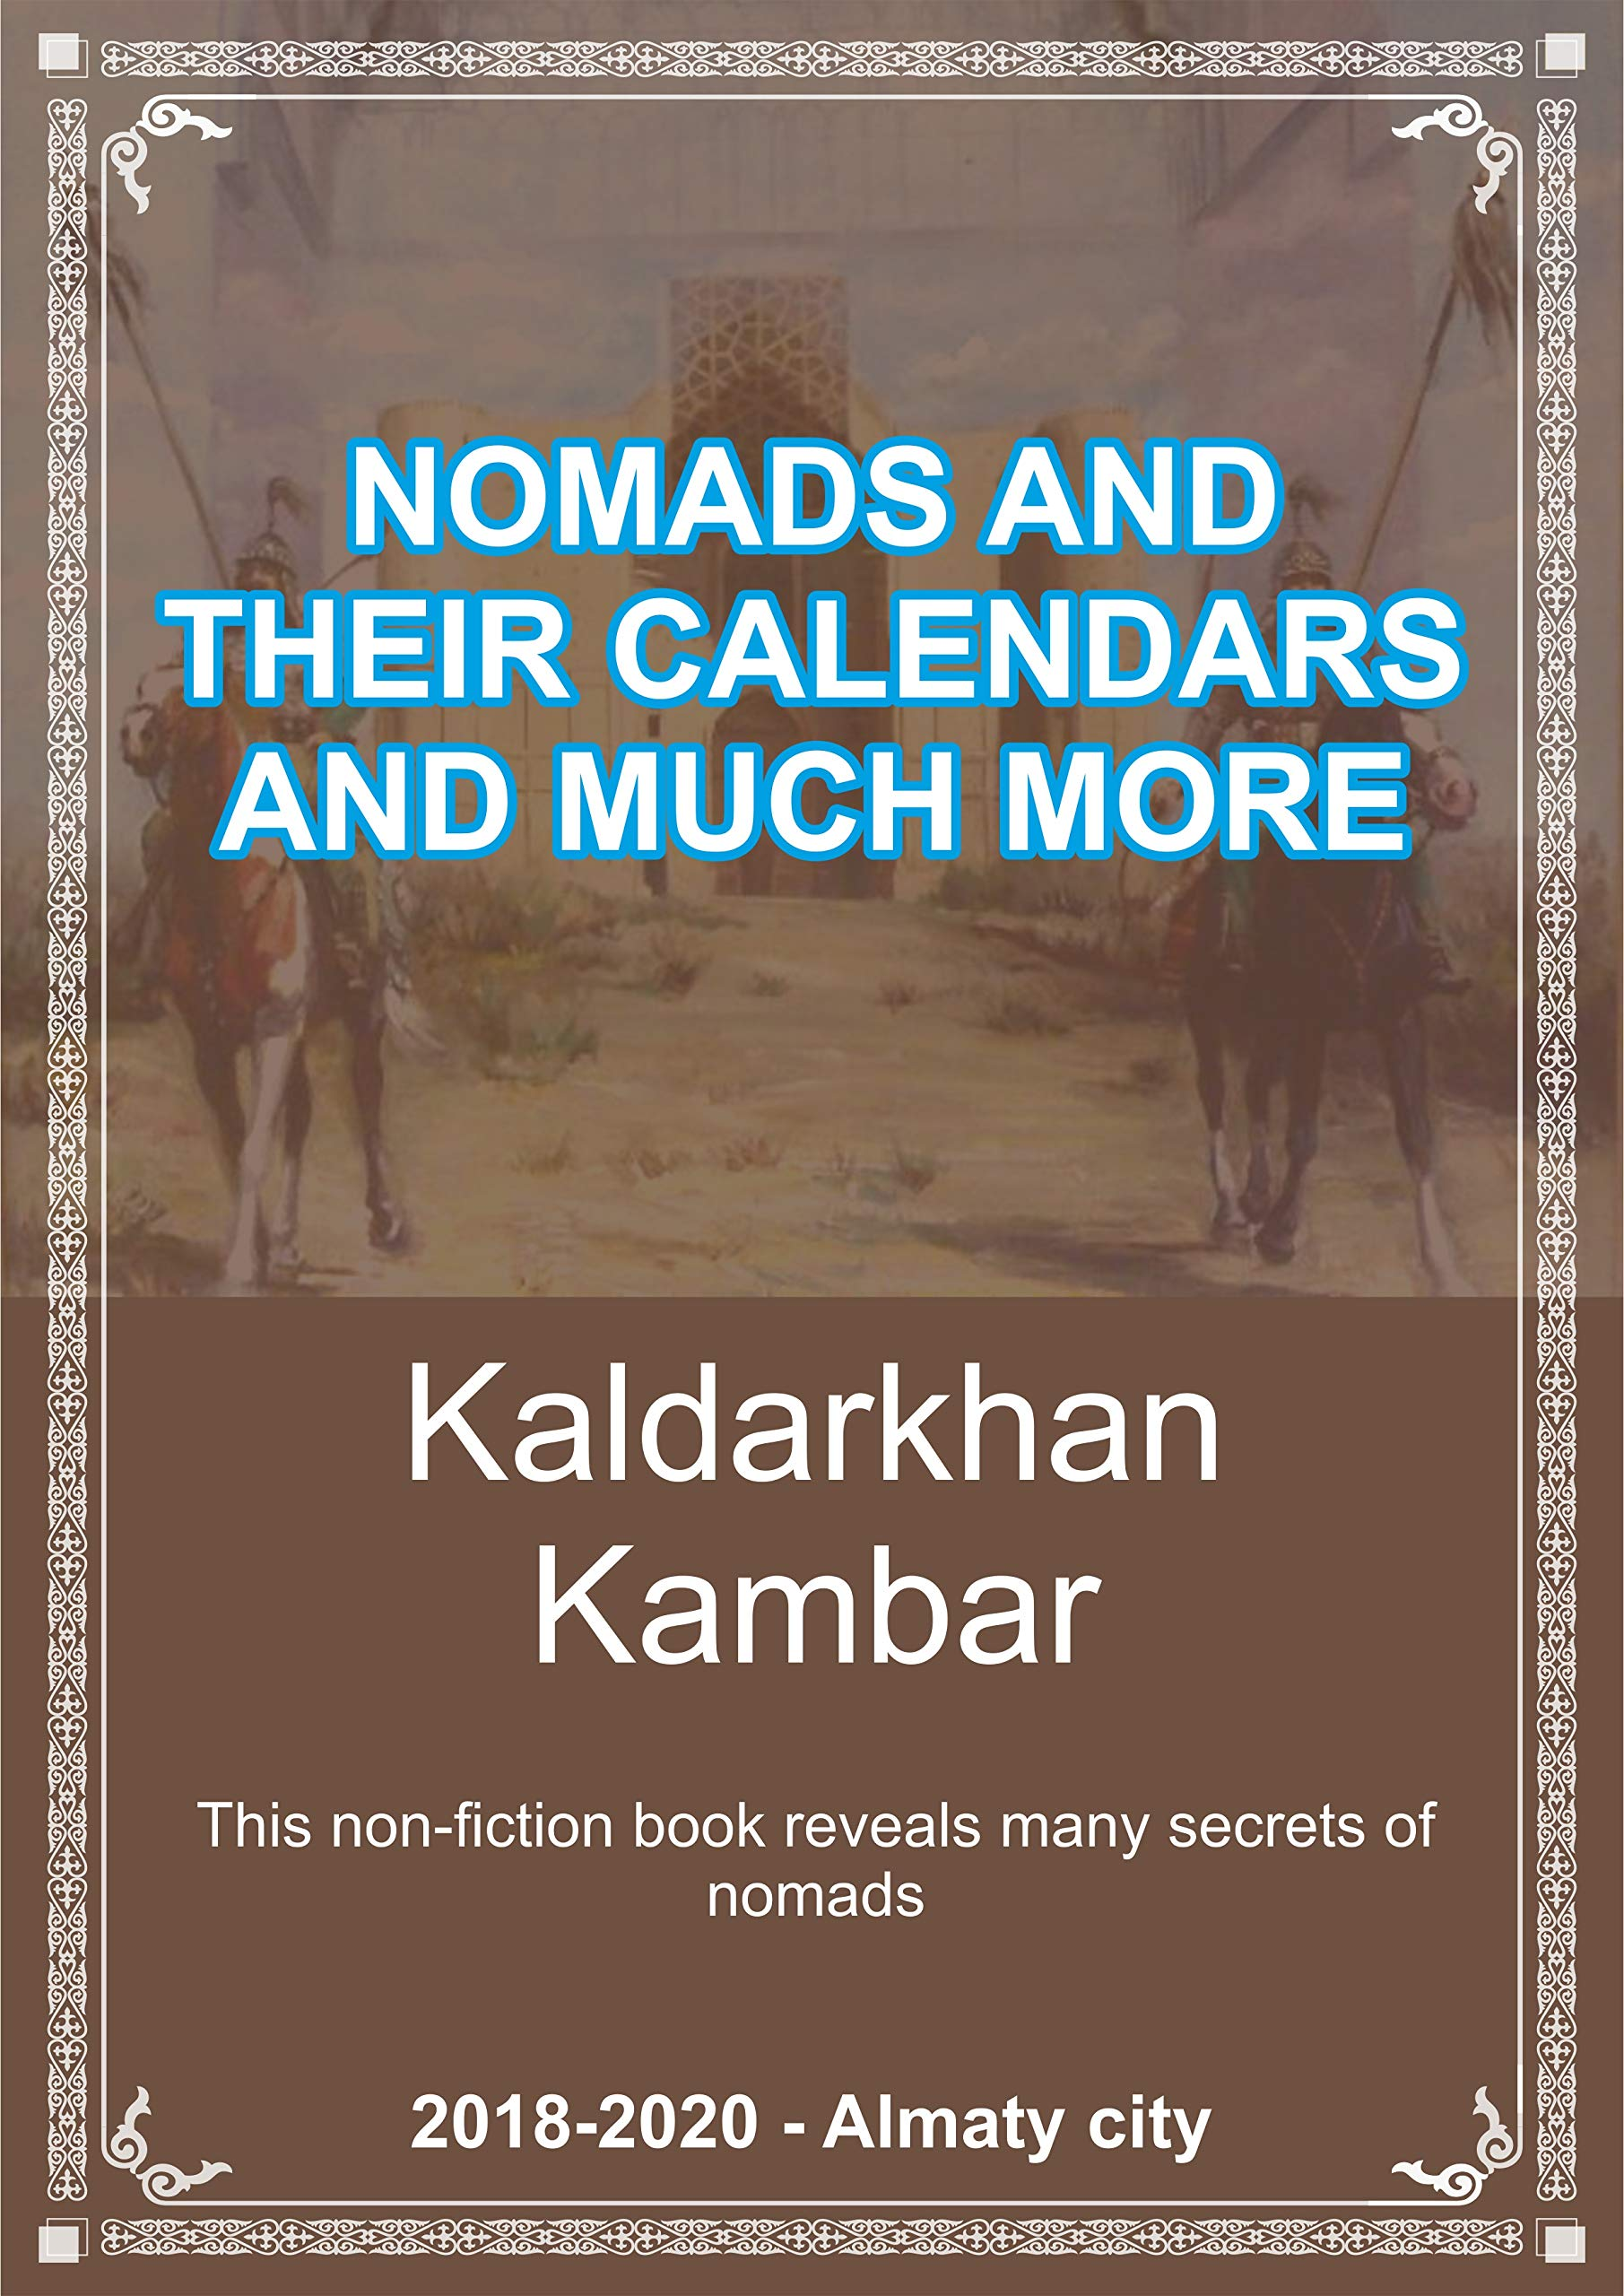 Nomads and their calendars and much more: This non-fiction book reveals many secrets of nomads